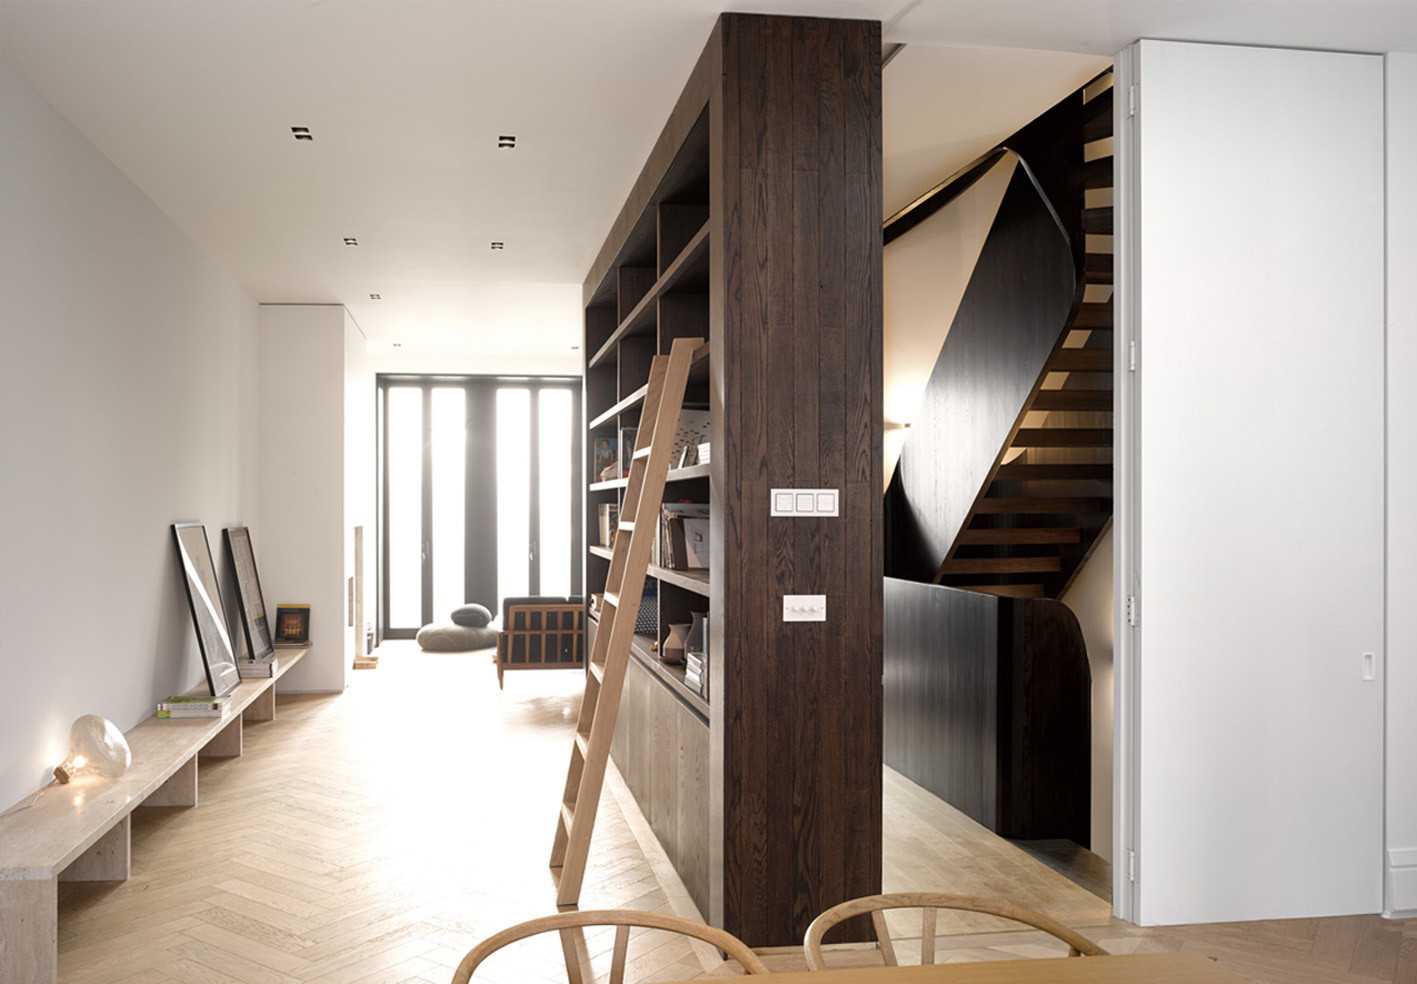 Floors And Kitchens St John St Johns Orchard John Smart Architects Archdaily